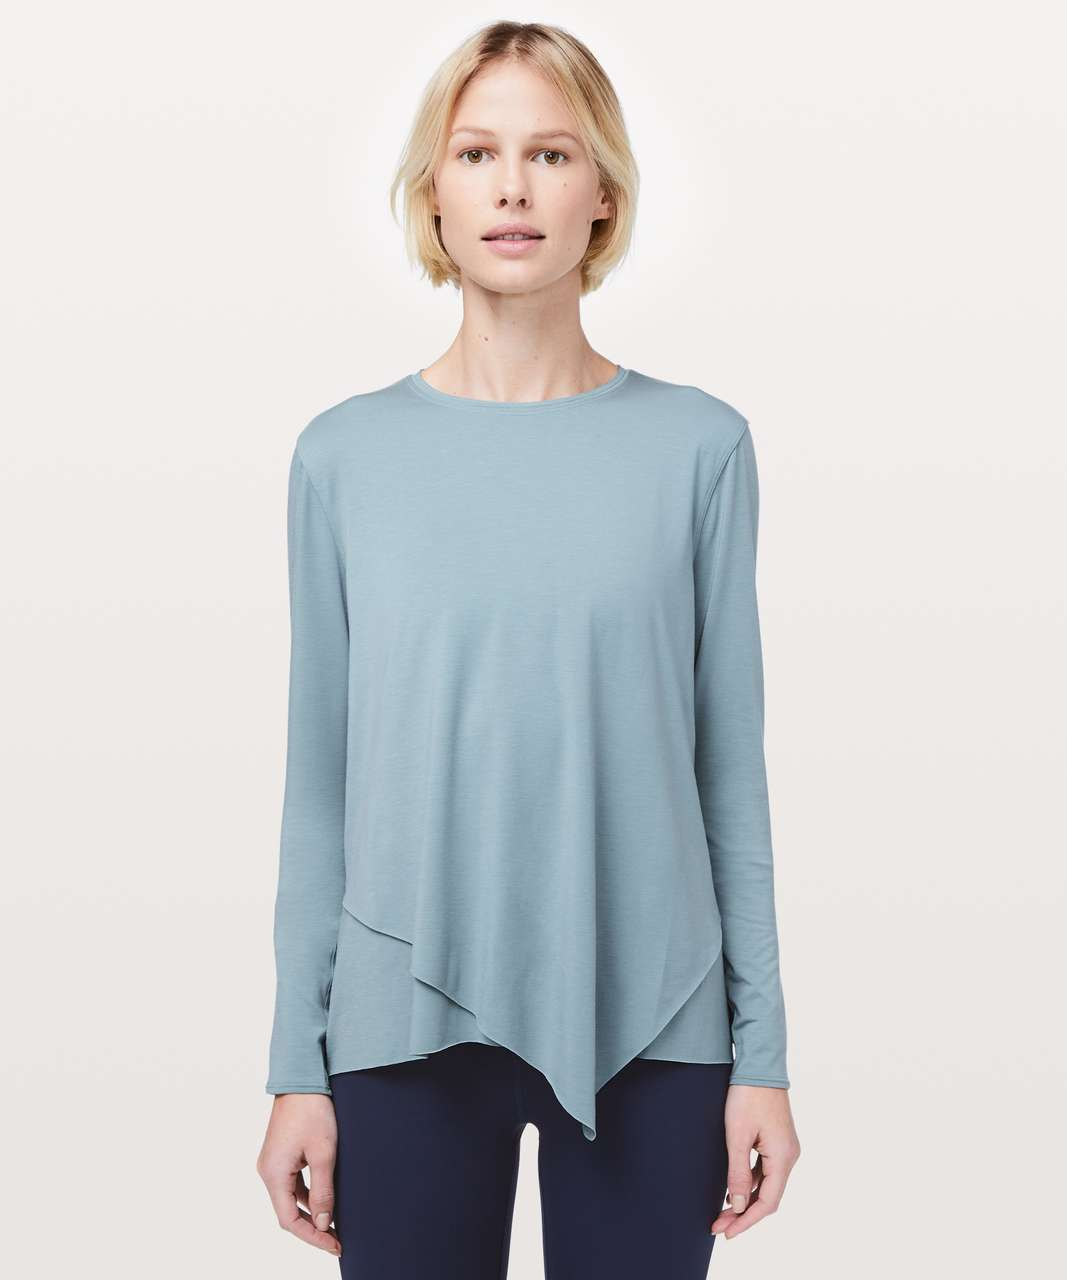 Lululemon Sweetest Day Long Sleeve *Tencel - Blue Cast